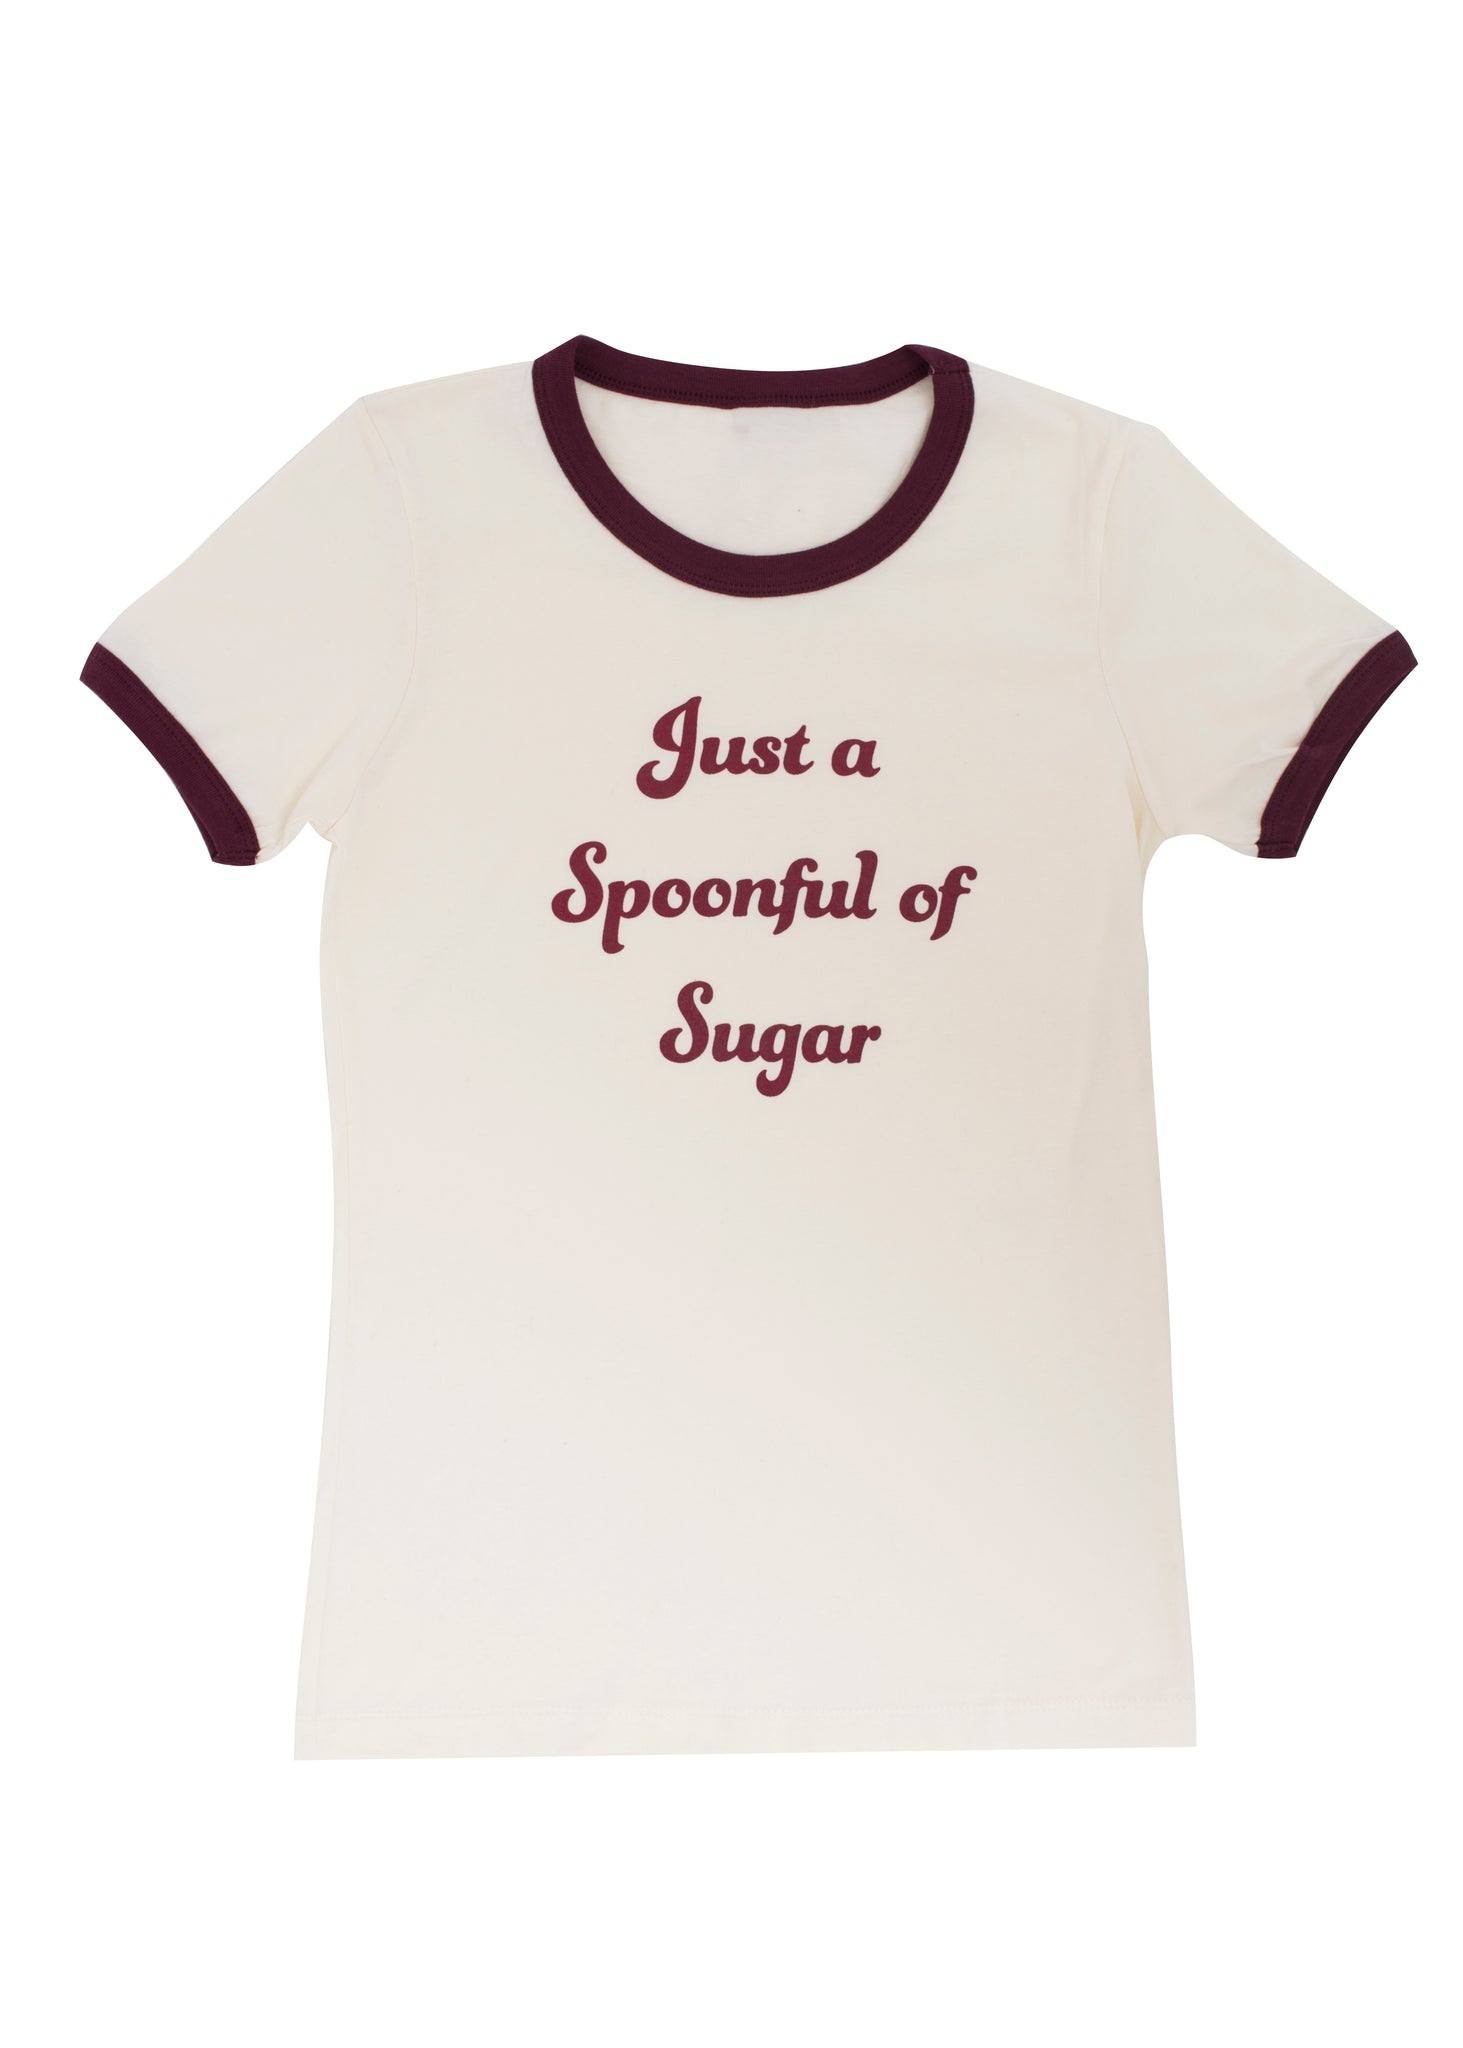 Just a Spoonful of Sugar Tee